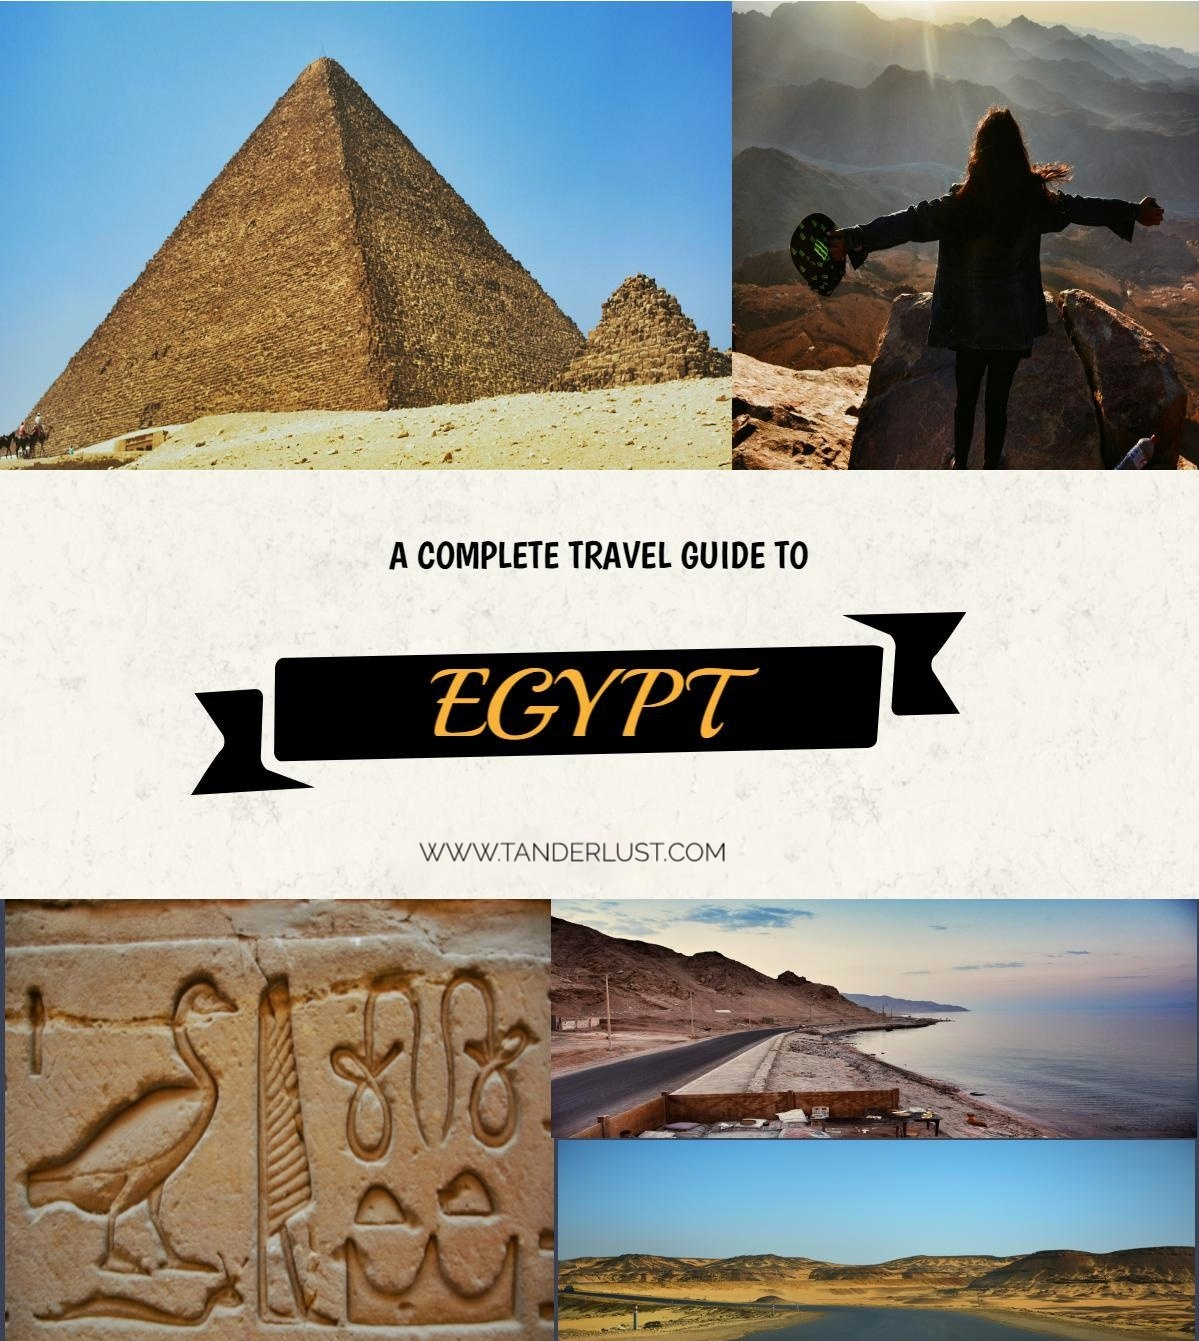 The complete travel guide to Egypt